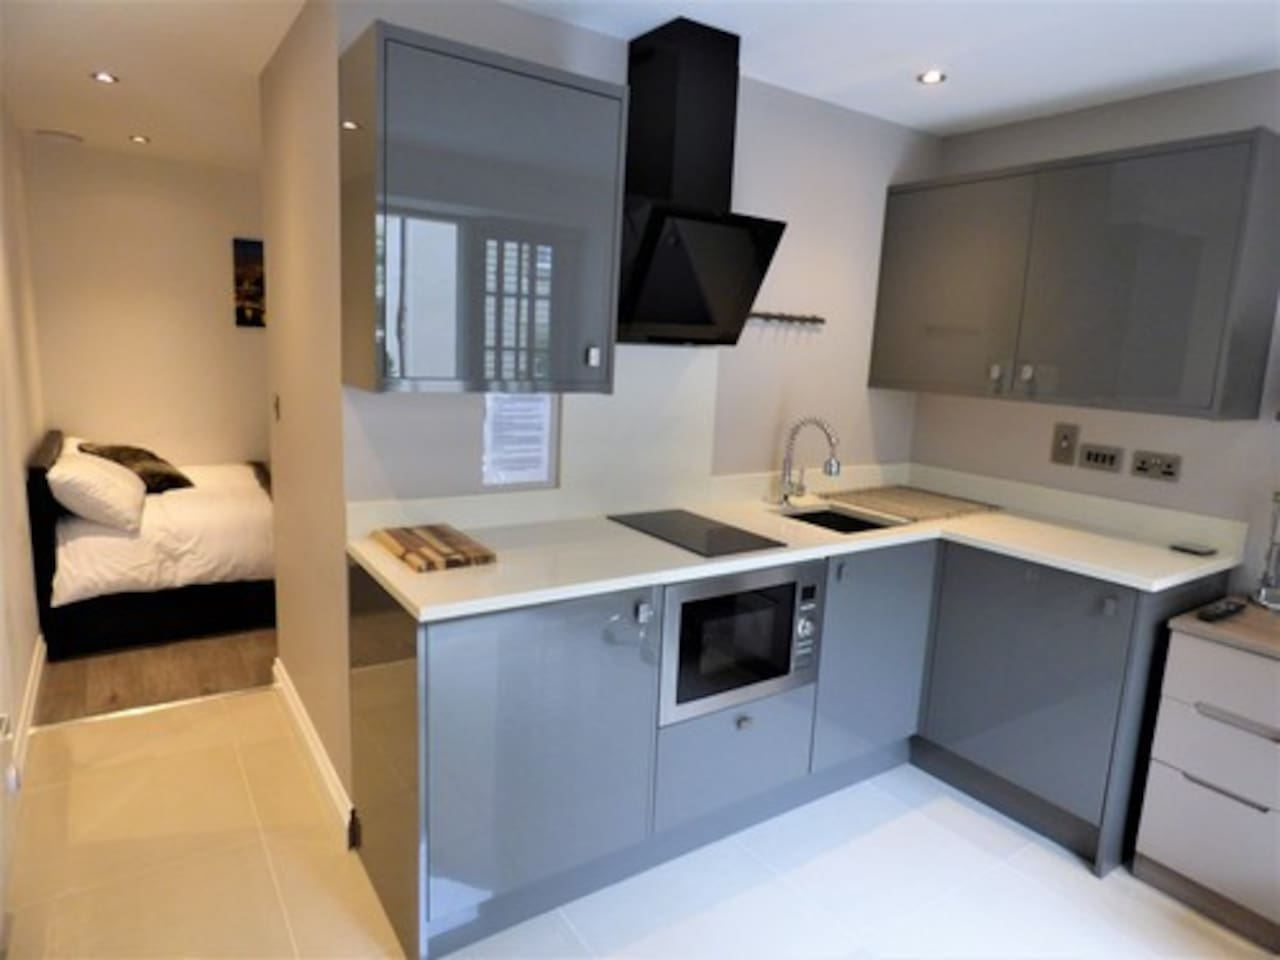 Luxury Double Bedroom Studio with High Gloss Furniture